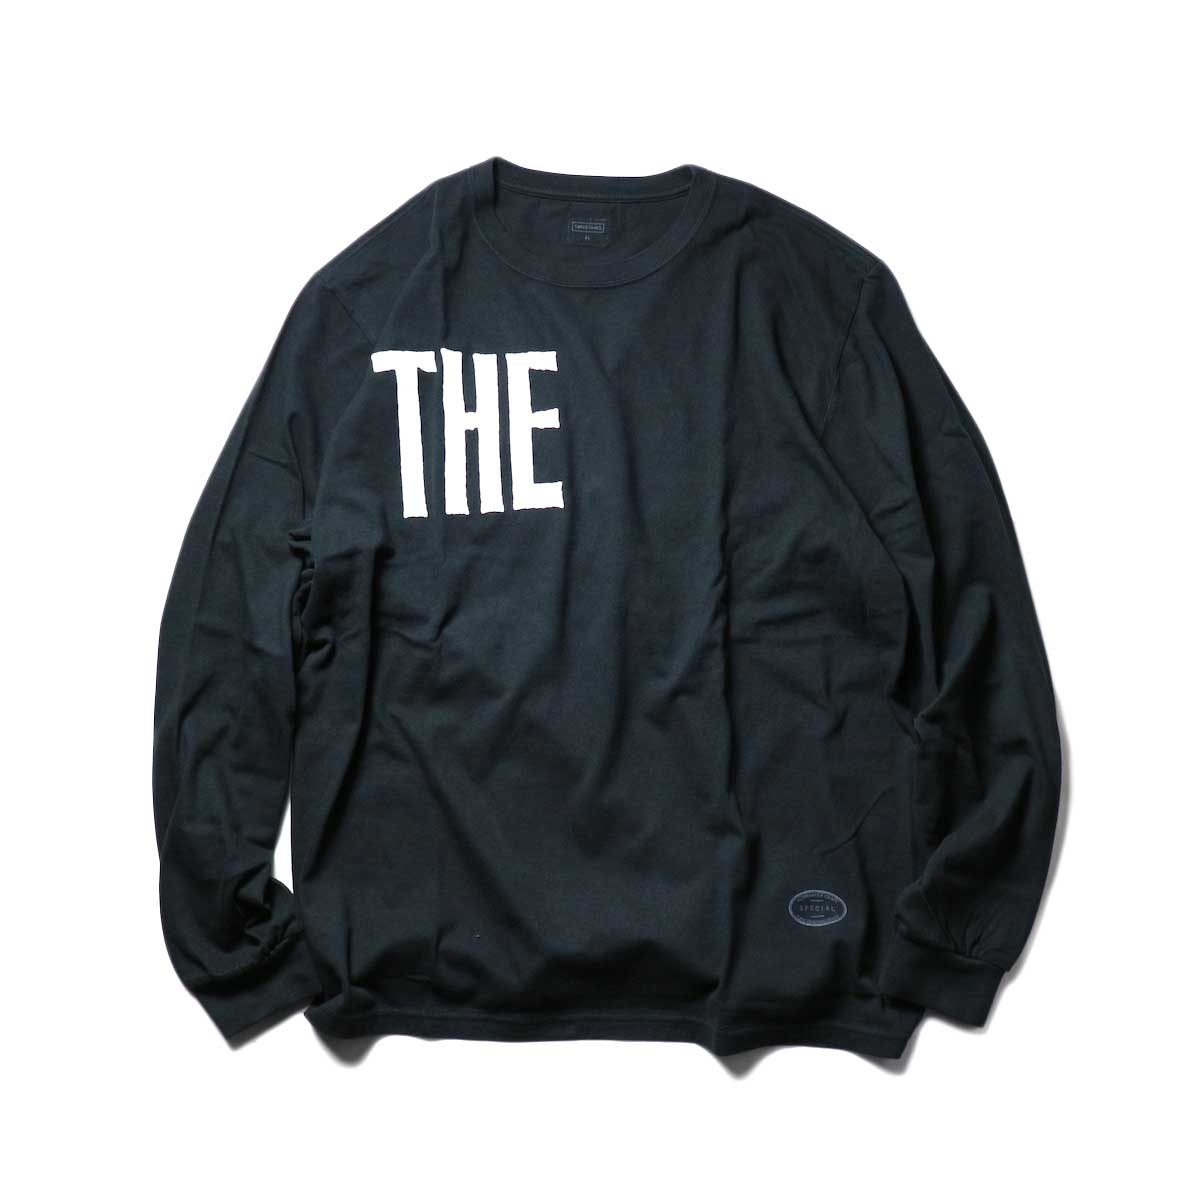 TANGTANG / ARCHIVE -THE- (Black)